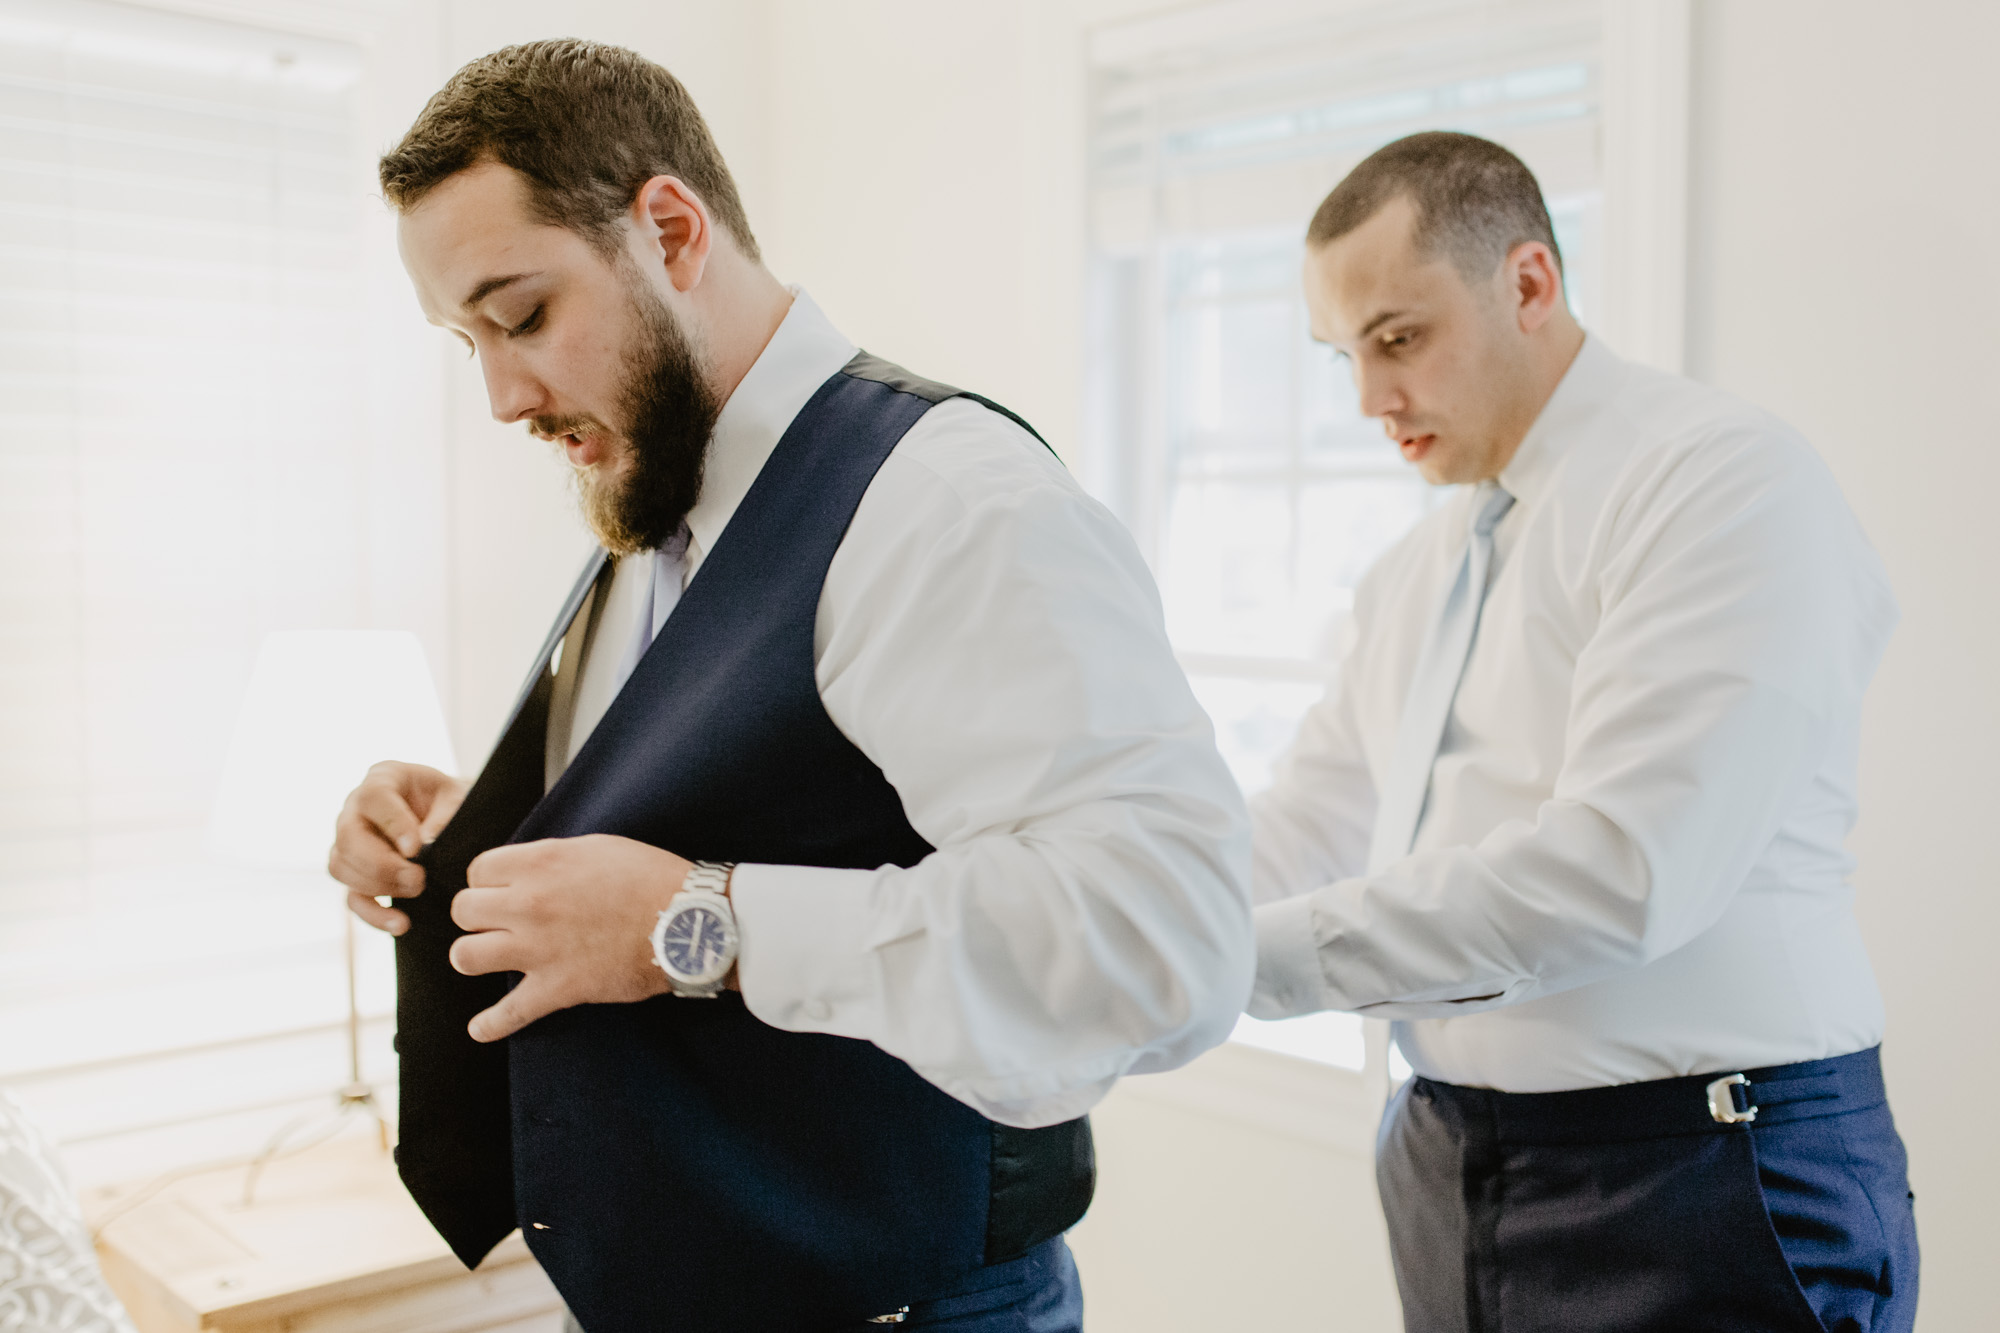 The groom and his best man get dressed for the wedding